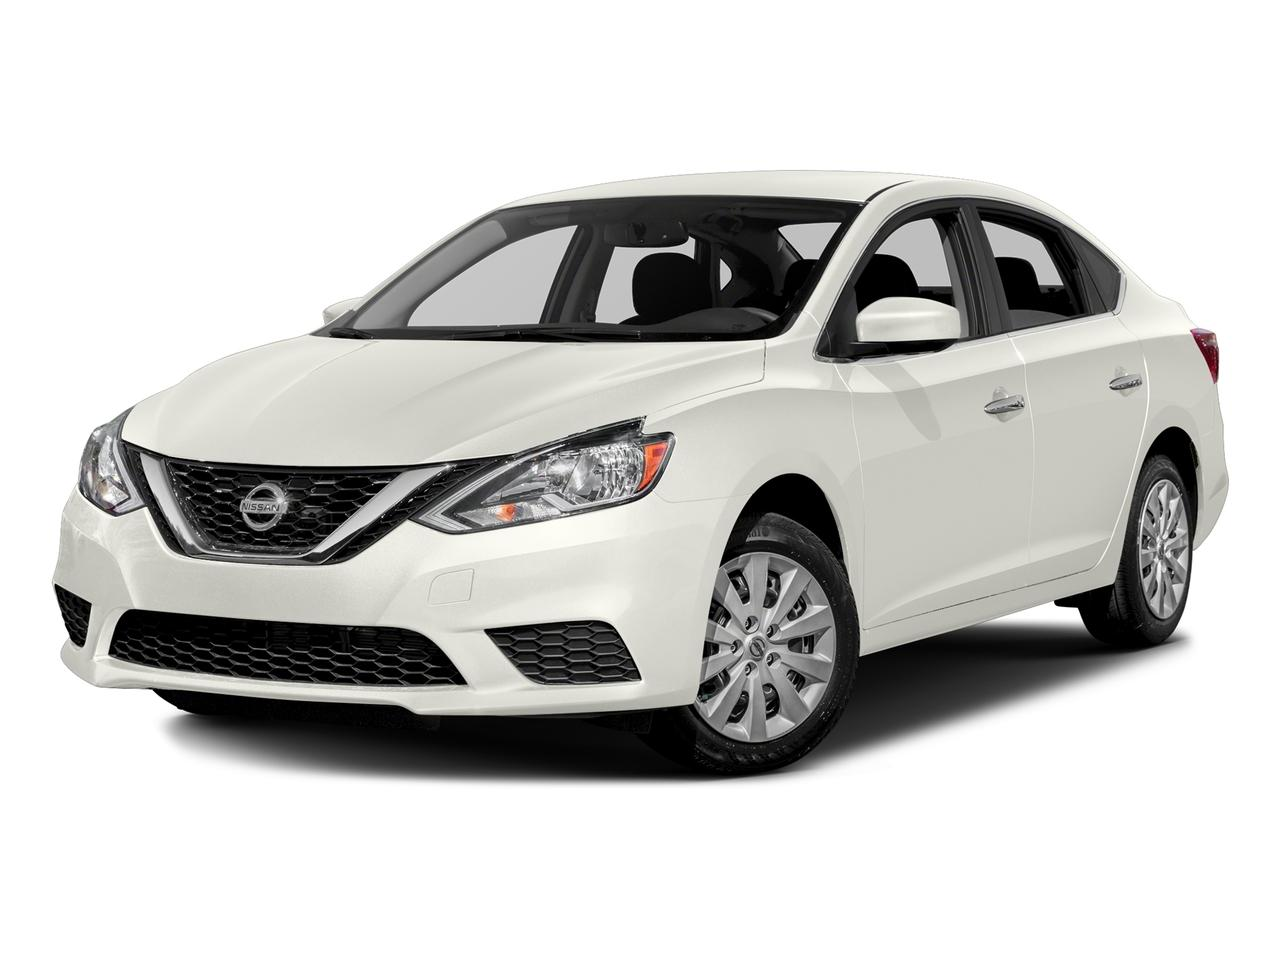 2017 Nissan Sentra Vehicle Photo in Albuquerque, NM 87114